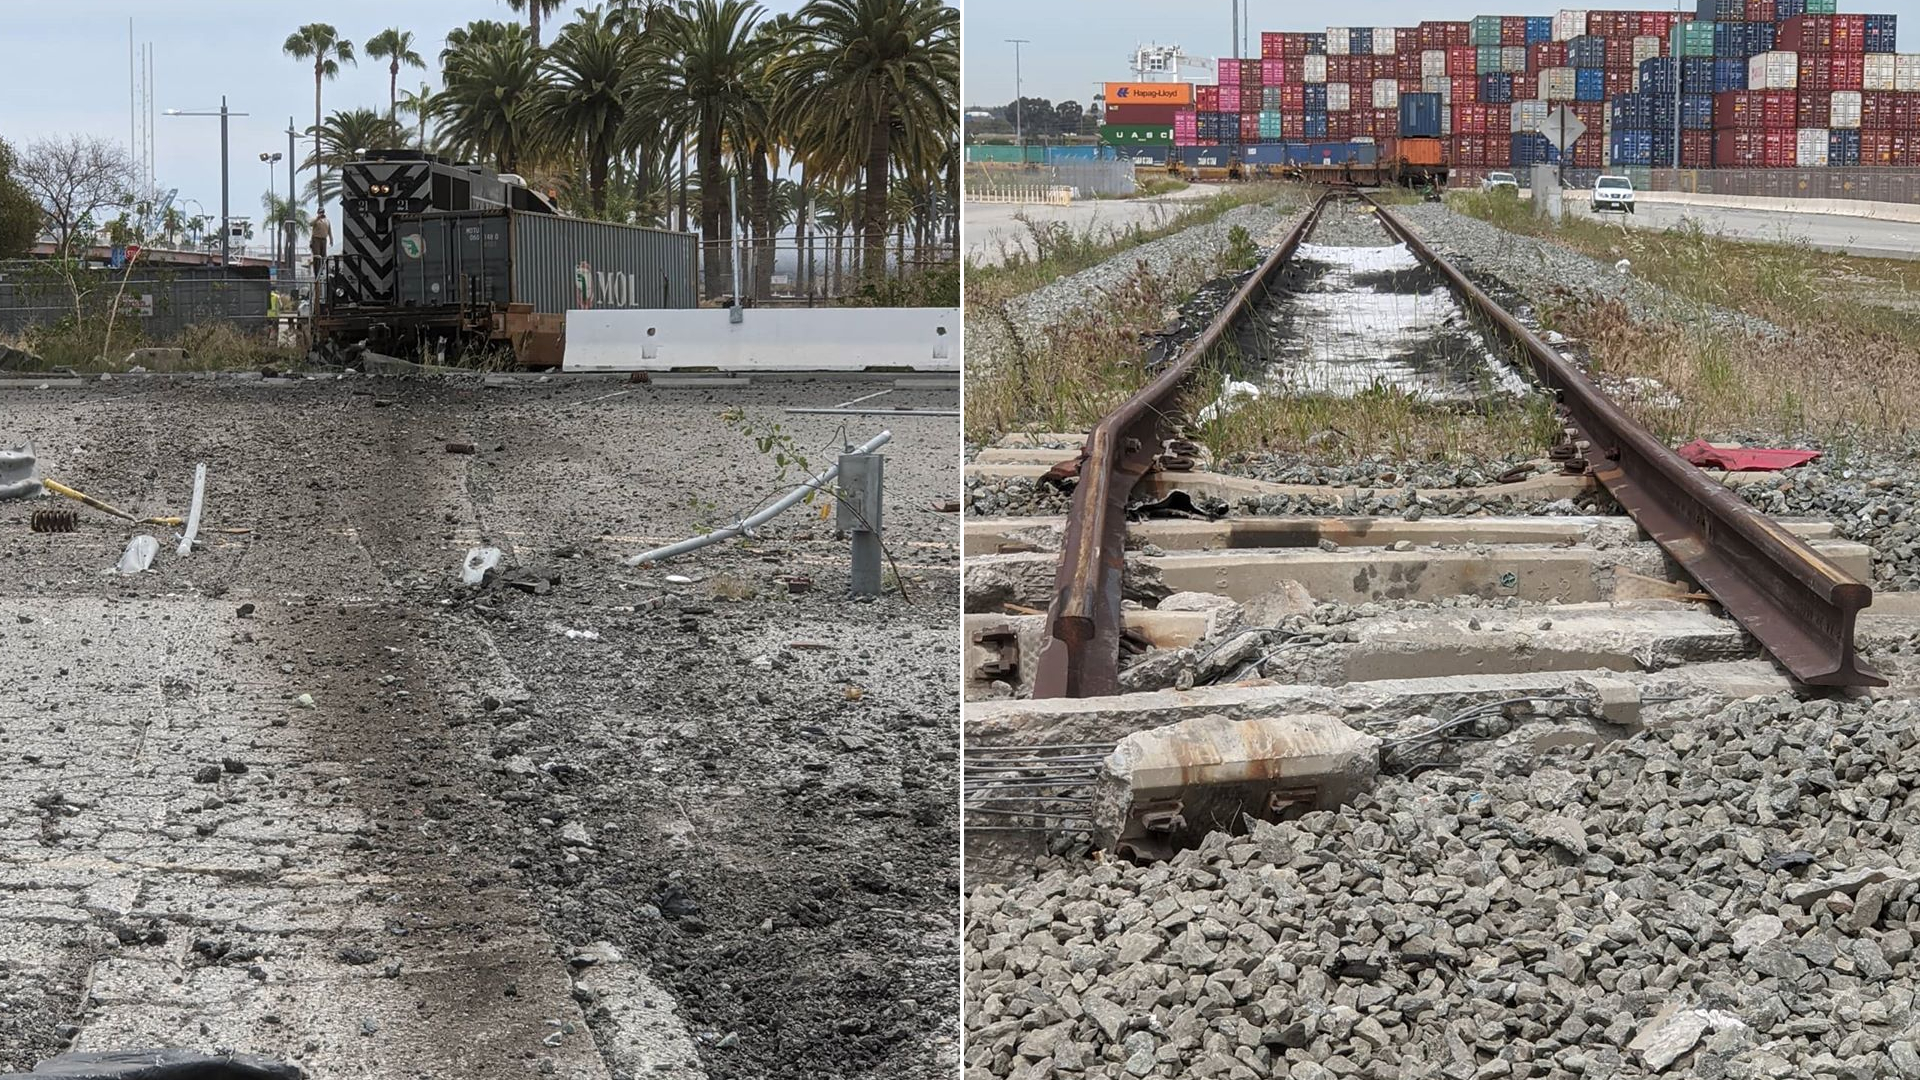 The scene of an allegedly intentional train derailment at the Port of Los Angeles, near where the USNS Mercy is docked, is seen on March 31, 2020. (Credit: @pjreynolds505 / Instagram)